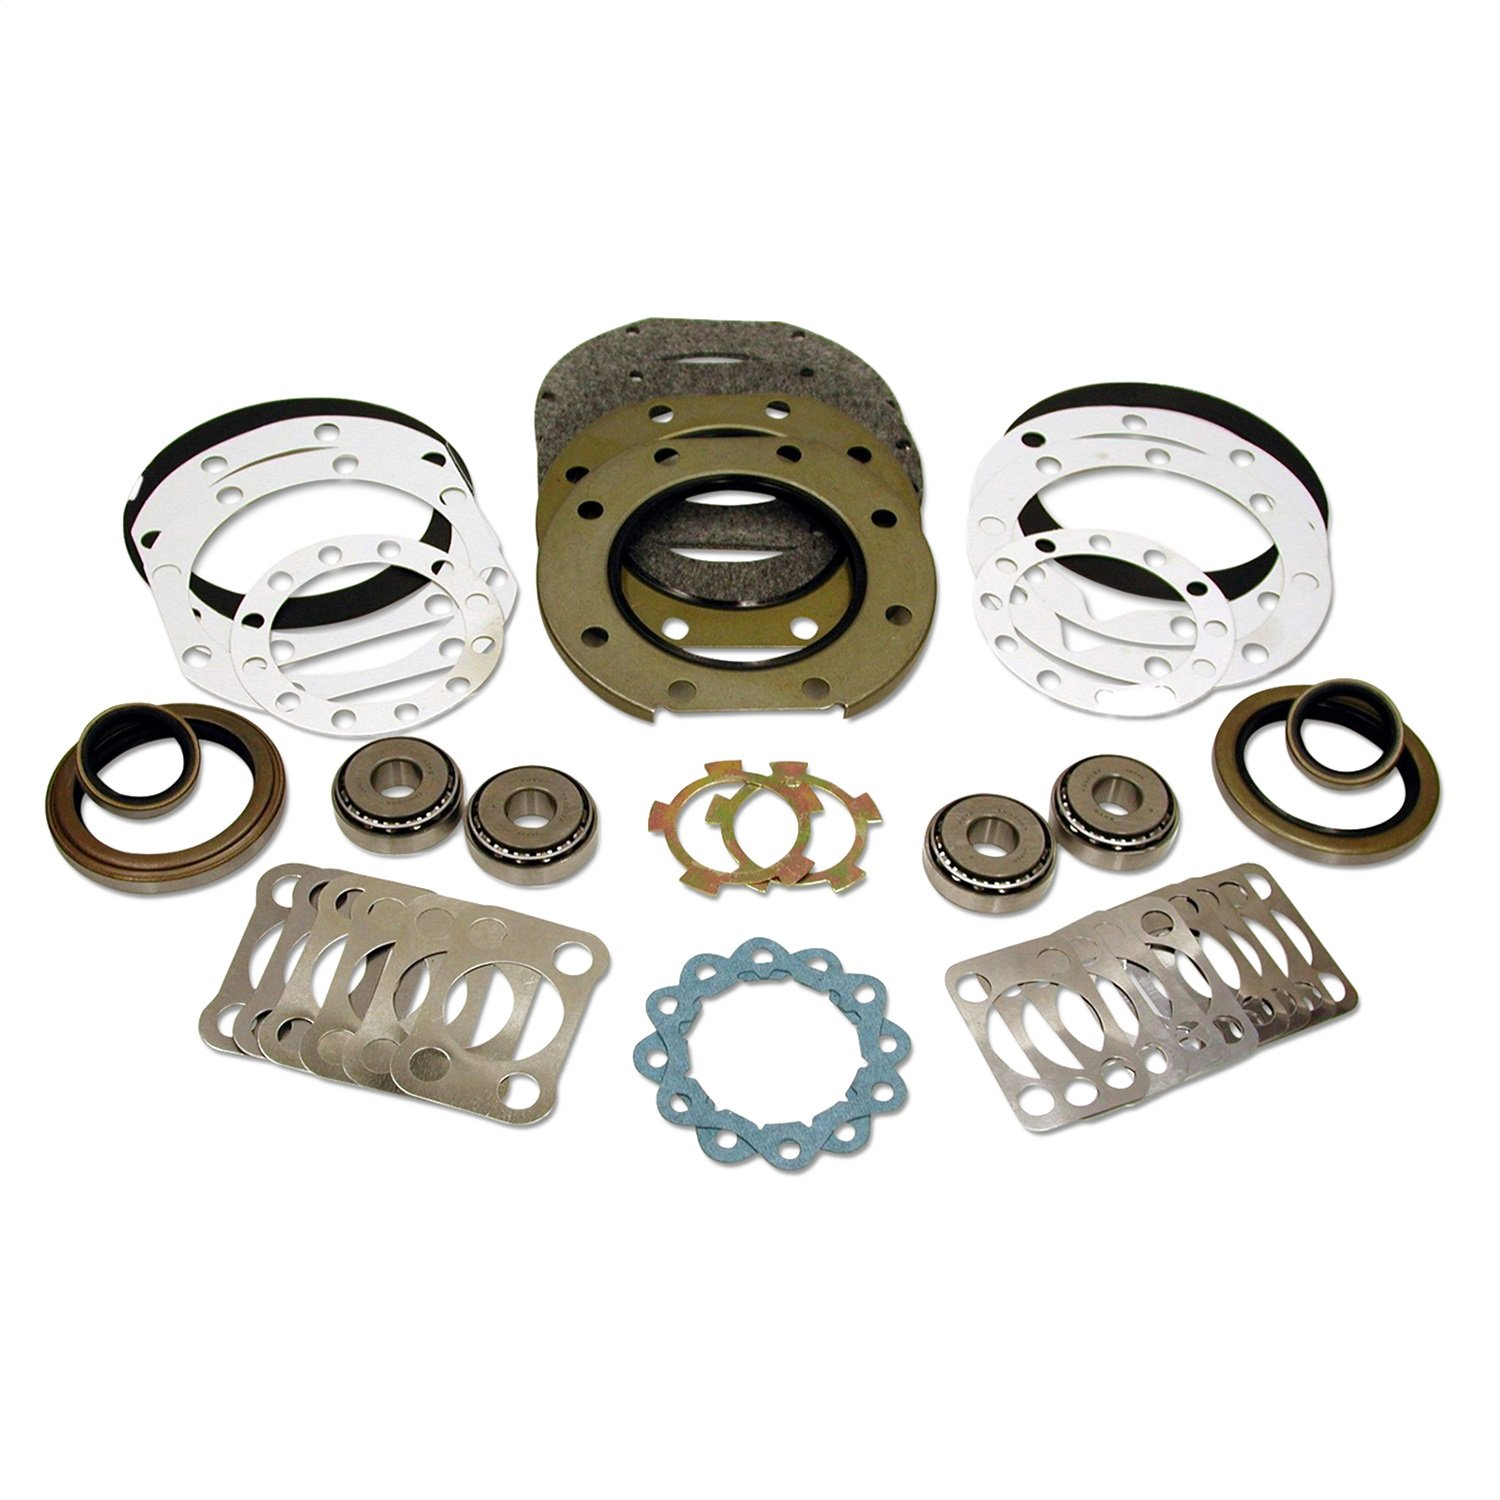 Yukon (YP KNCLKIT-TOY) Knuckle Kit for Toyota Hilux/Land Cruiser Differential by Yukon Gear